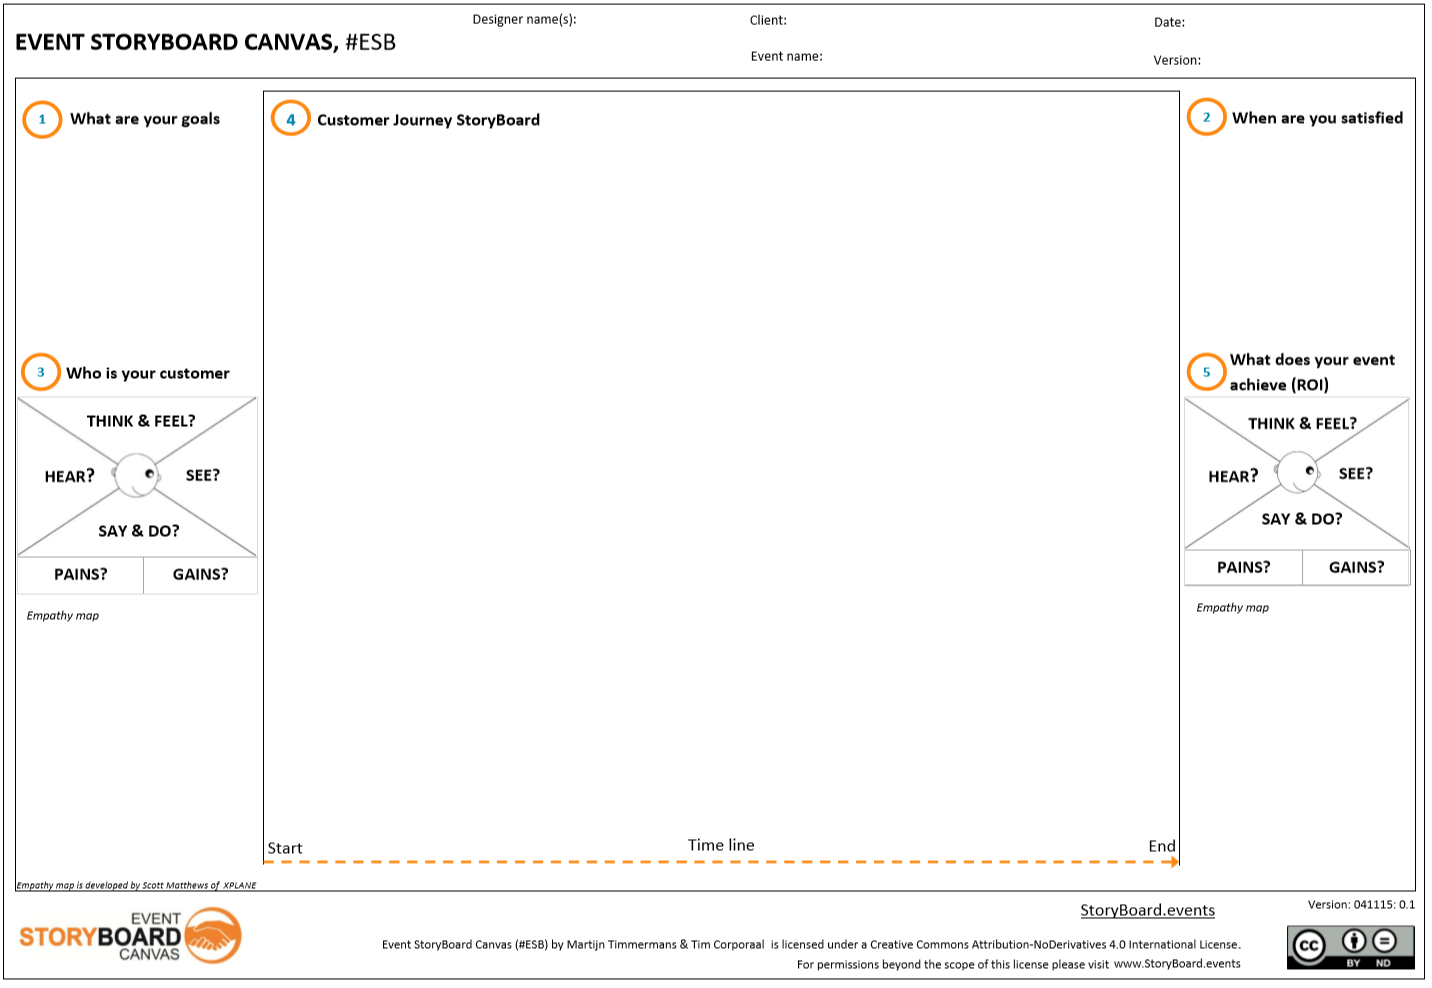 event storyboard canvas